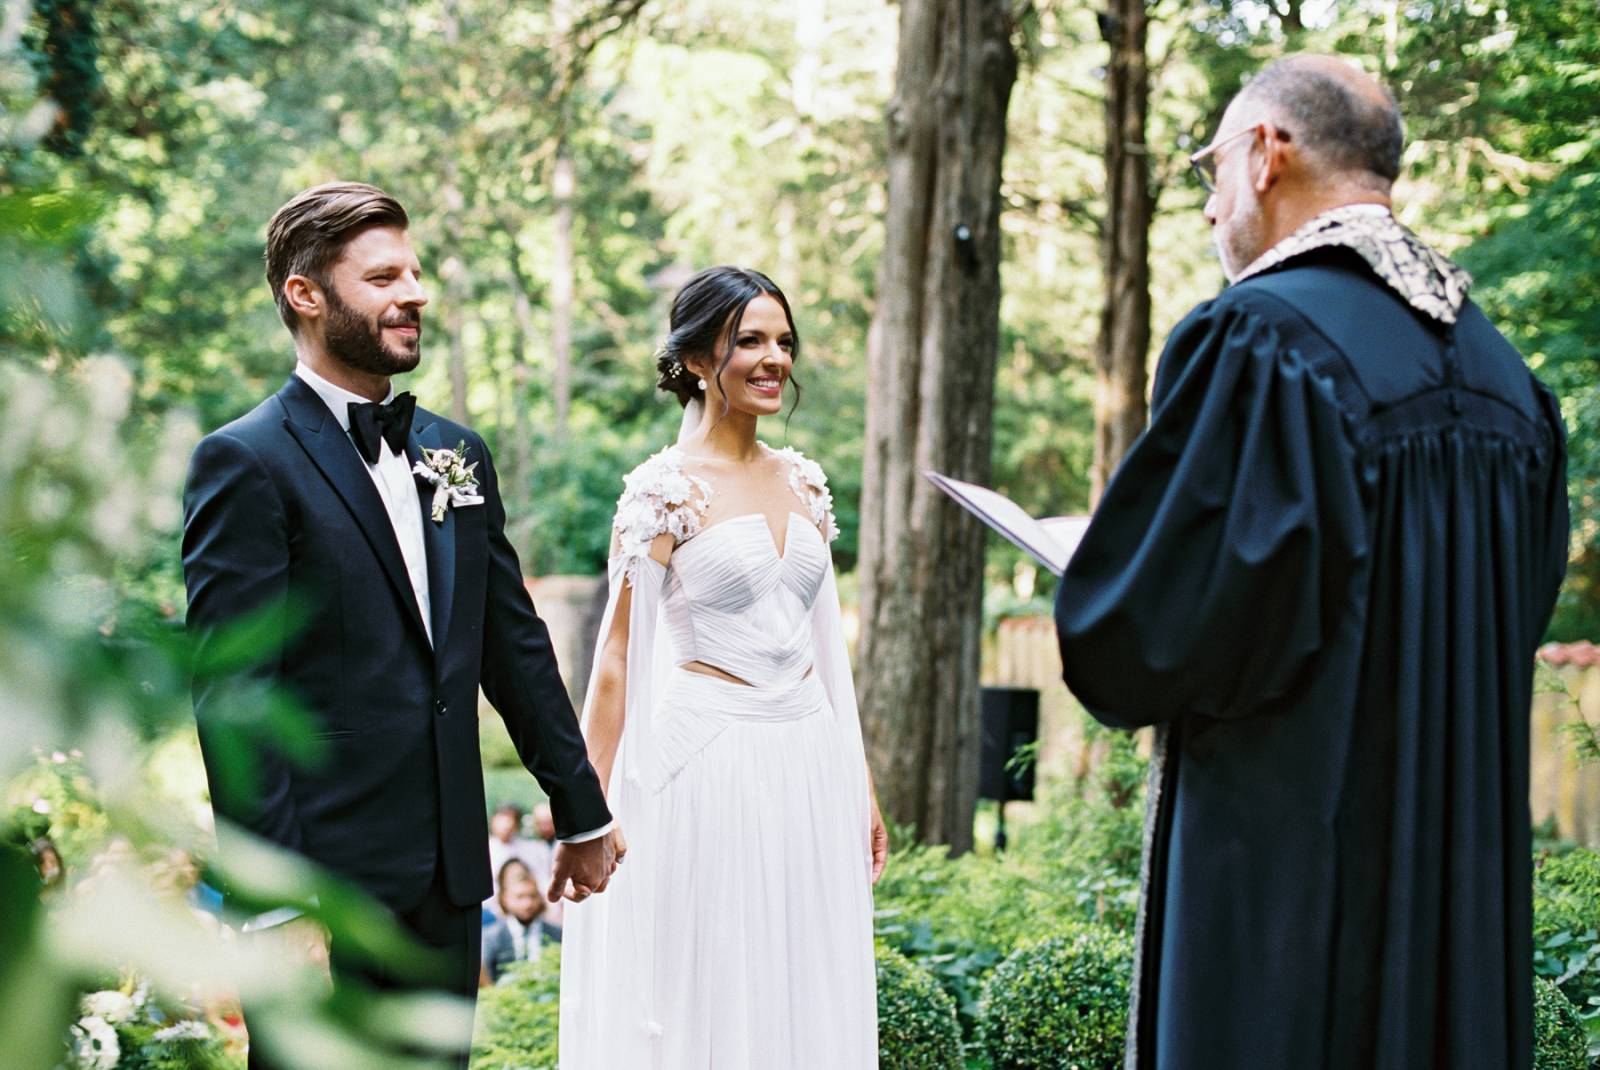 Enchanting NYC wedding in a sunken garden with a brass band